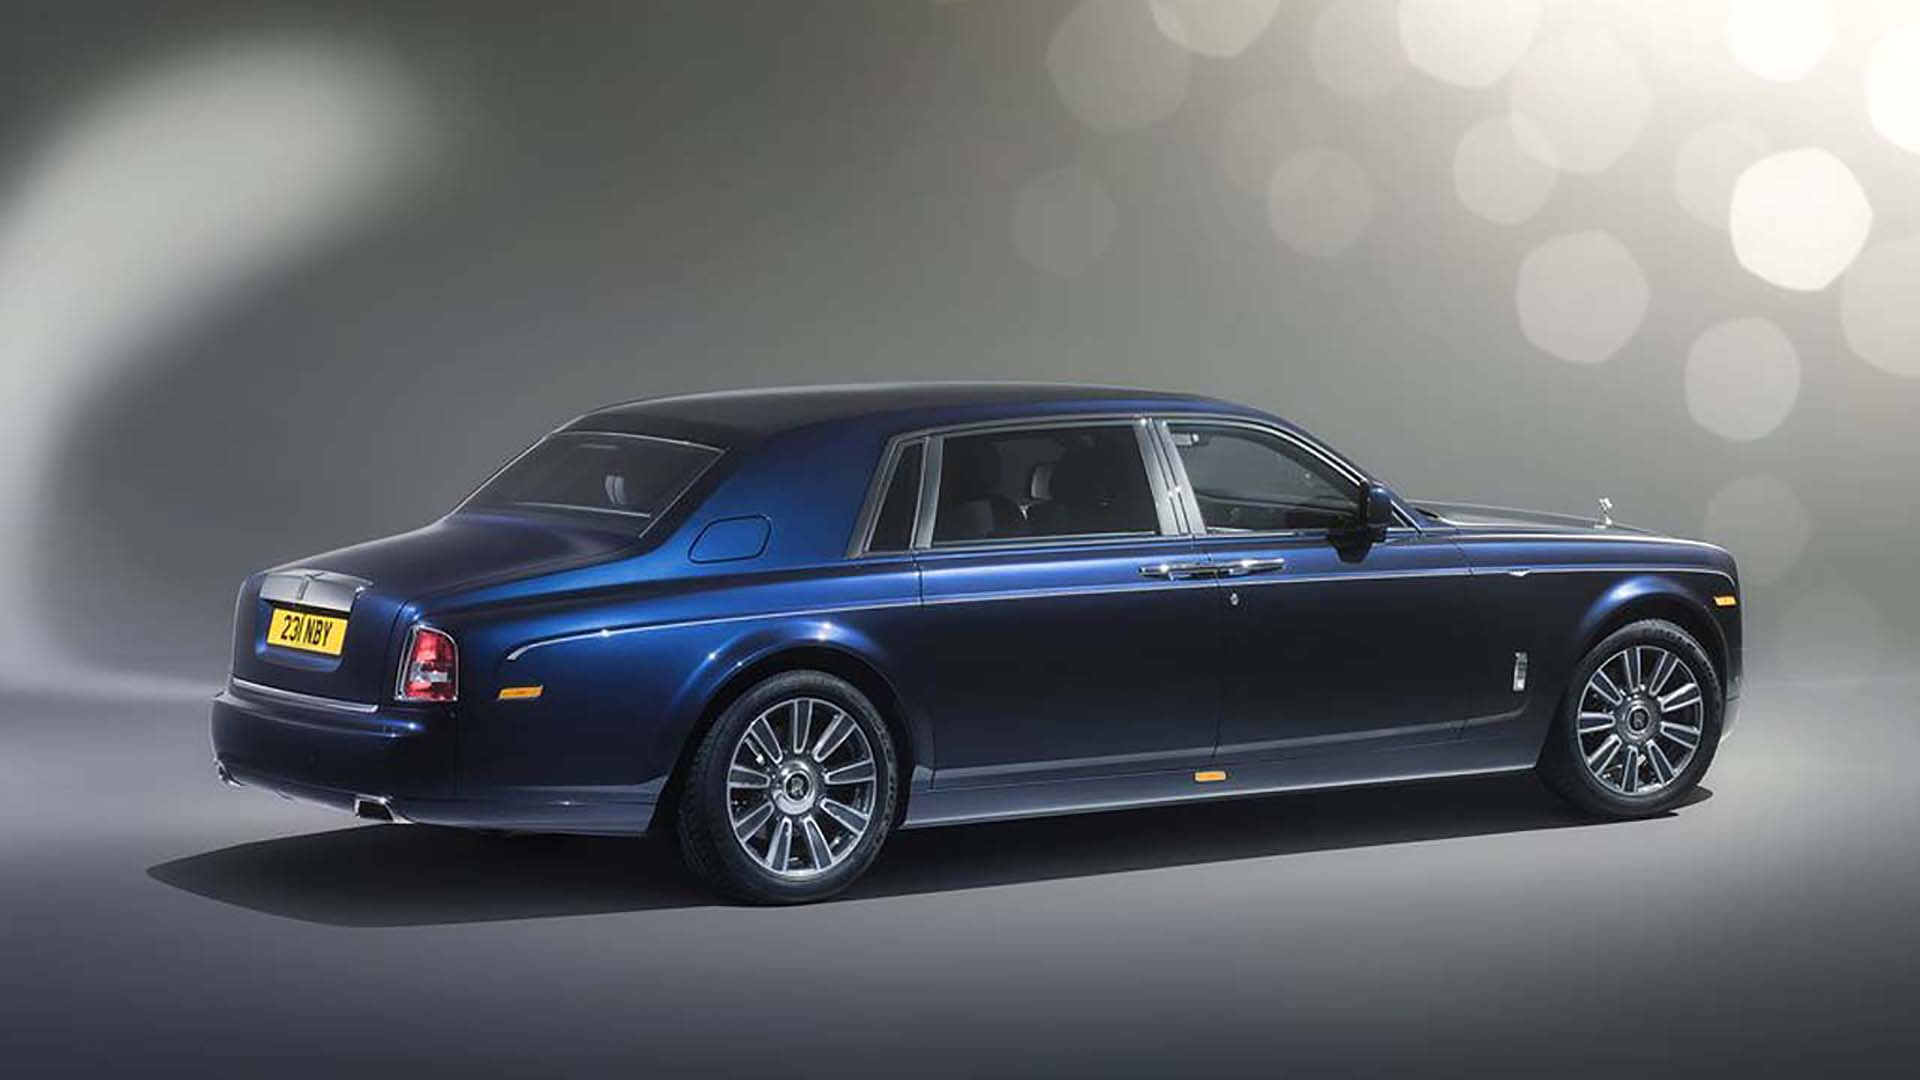 Rolls Royce Phantom Extended Wheelbase Luxury Rear Environment by ADP Special Projects